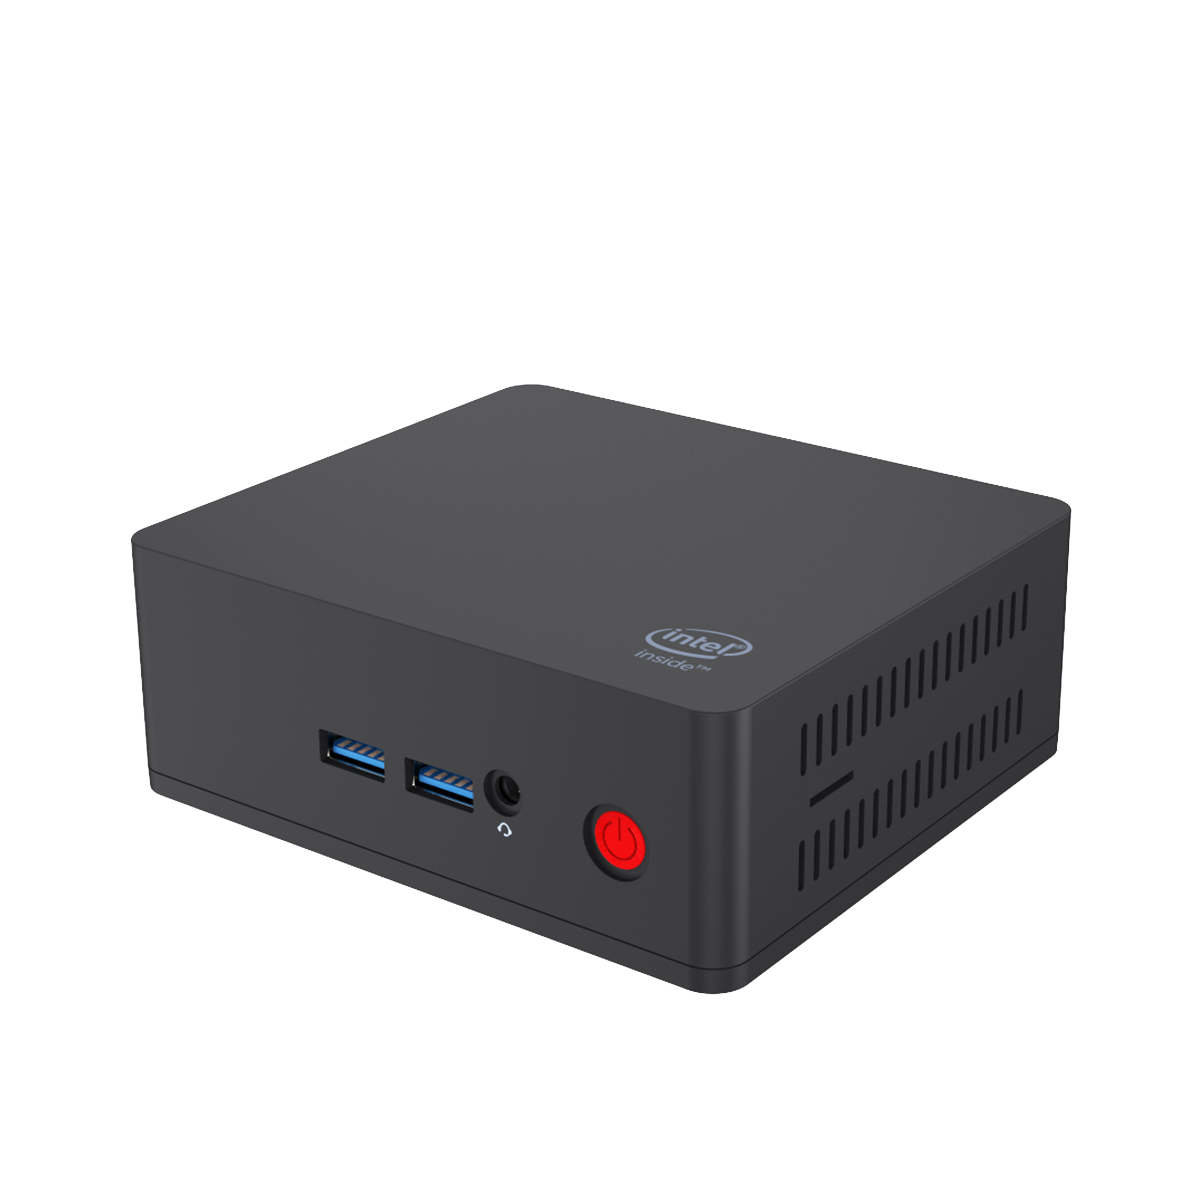 Beelink AP45 Intel NUC Mini PC with Windows 10